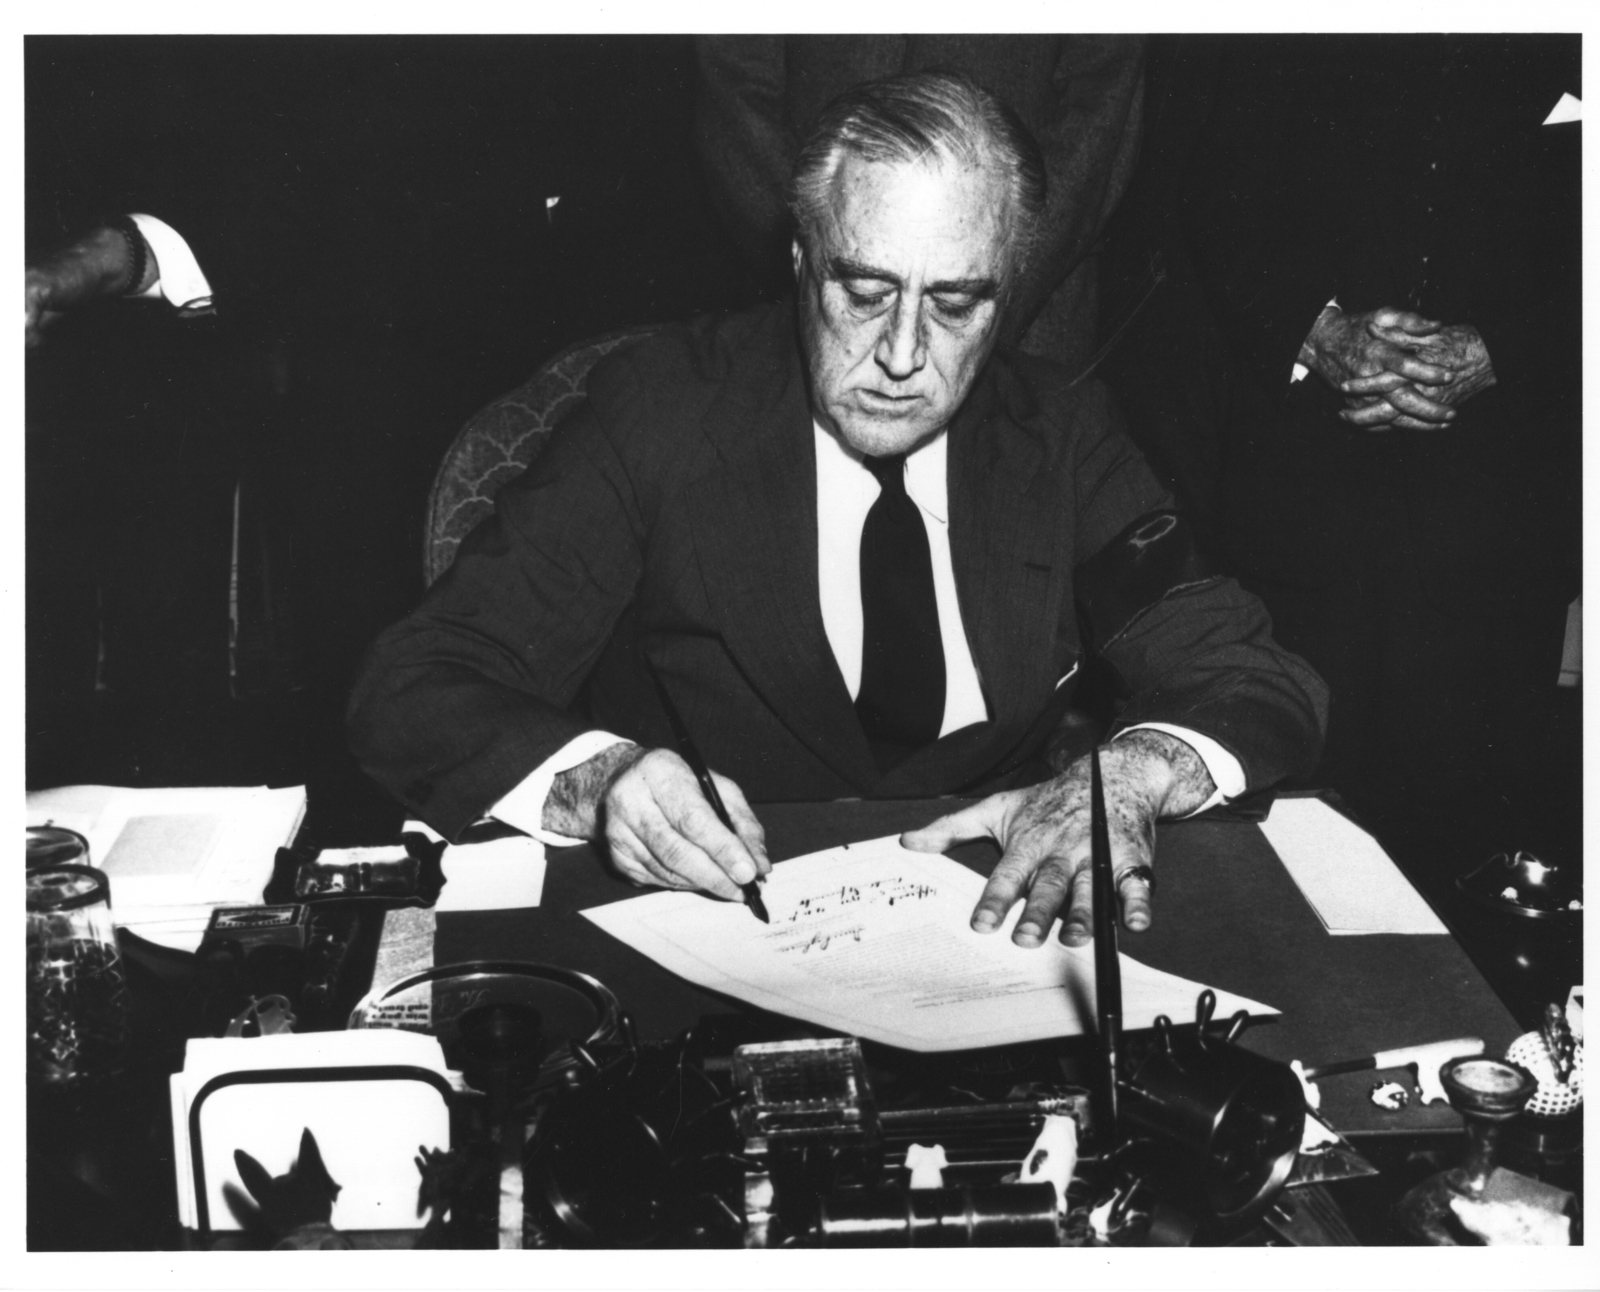 Photograph of President Franklin D. Roosevelt Signing the Declaration of War Against Japan